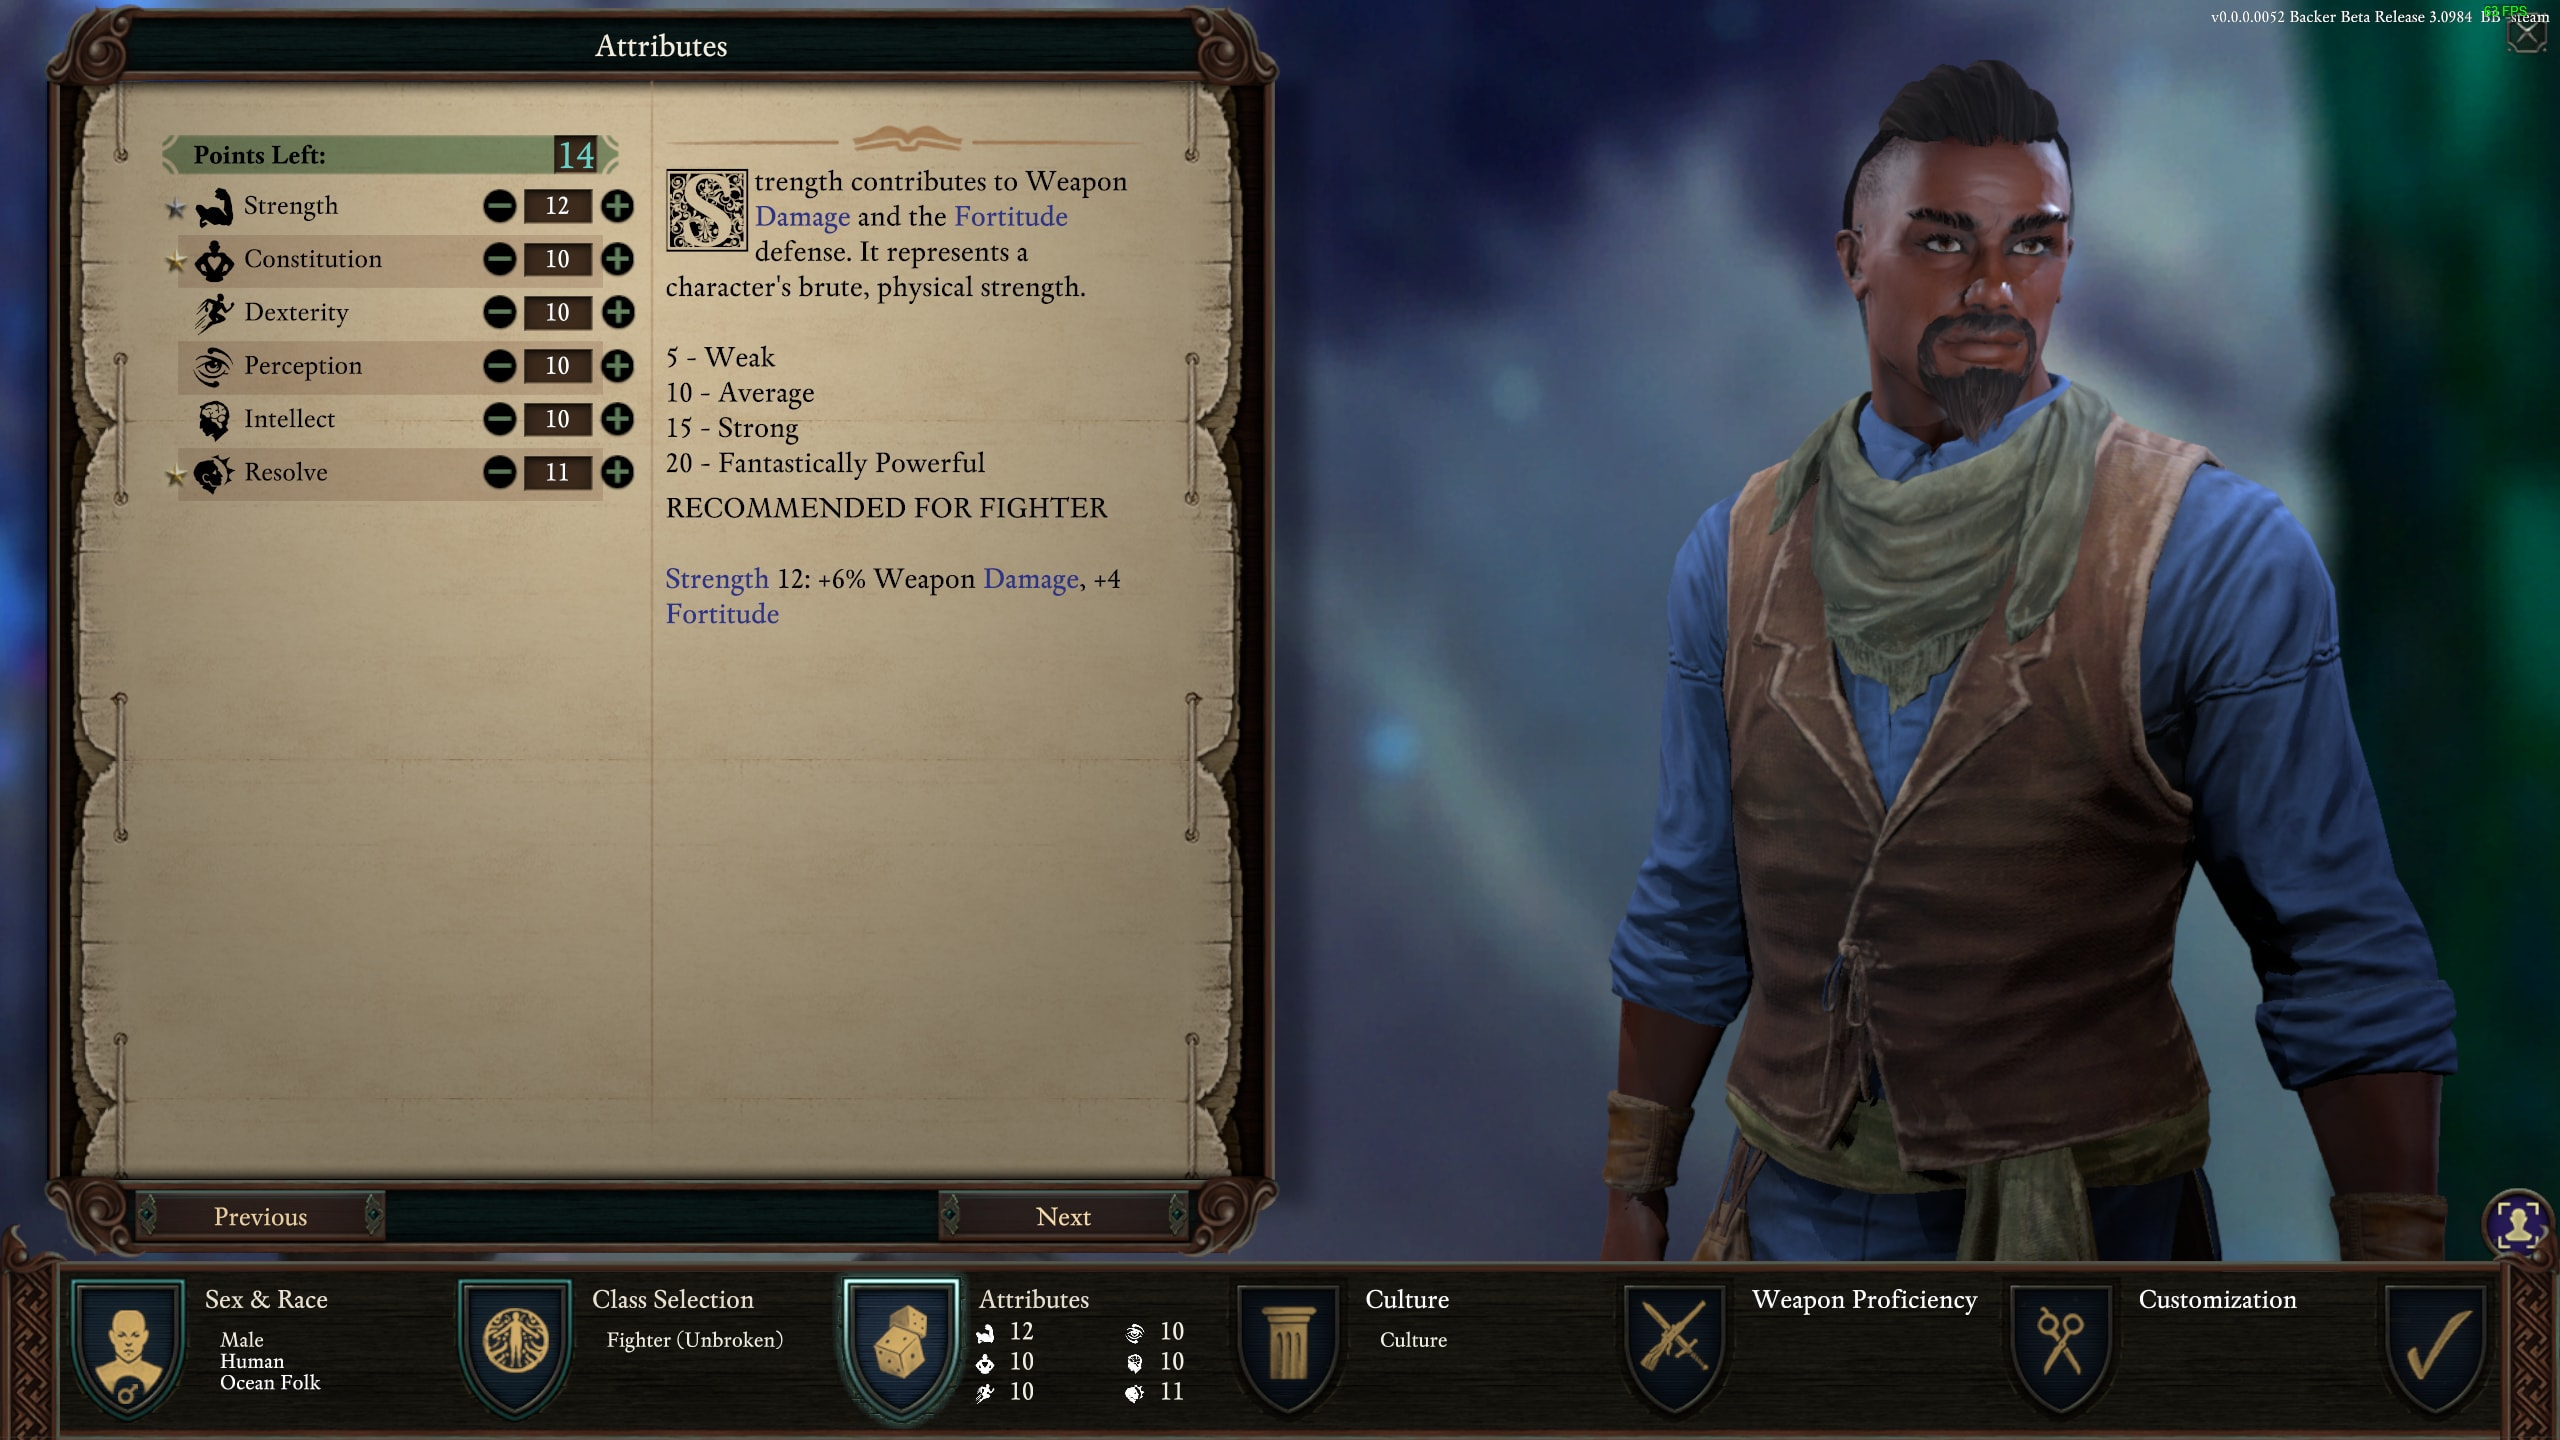 Pillars of Eternity 2: Deadfire character creation